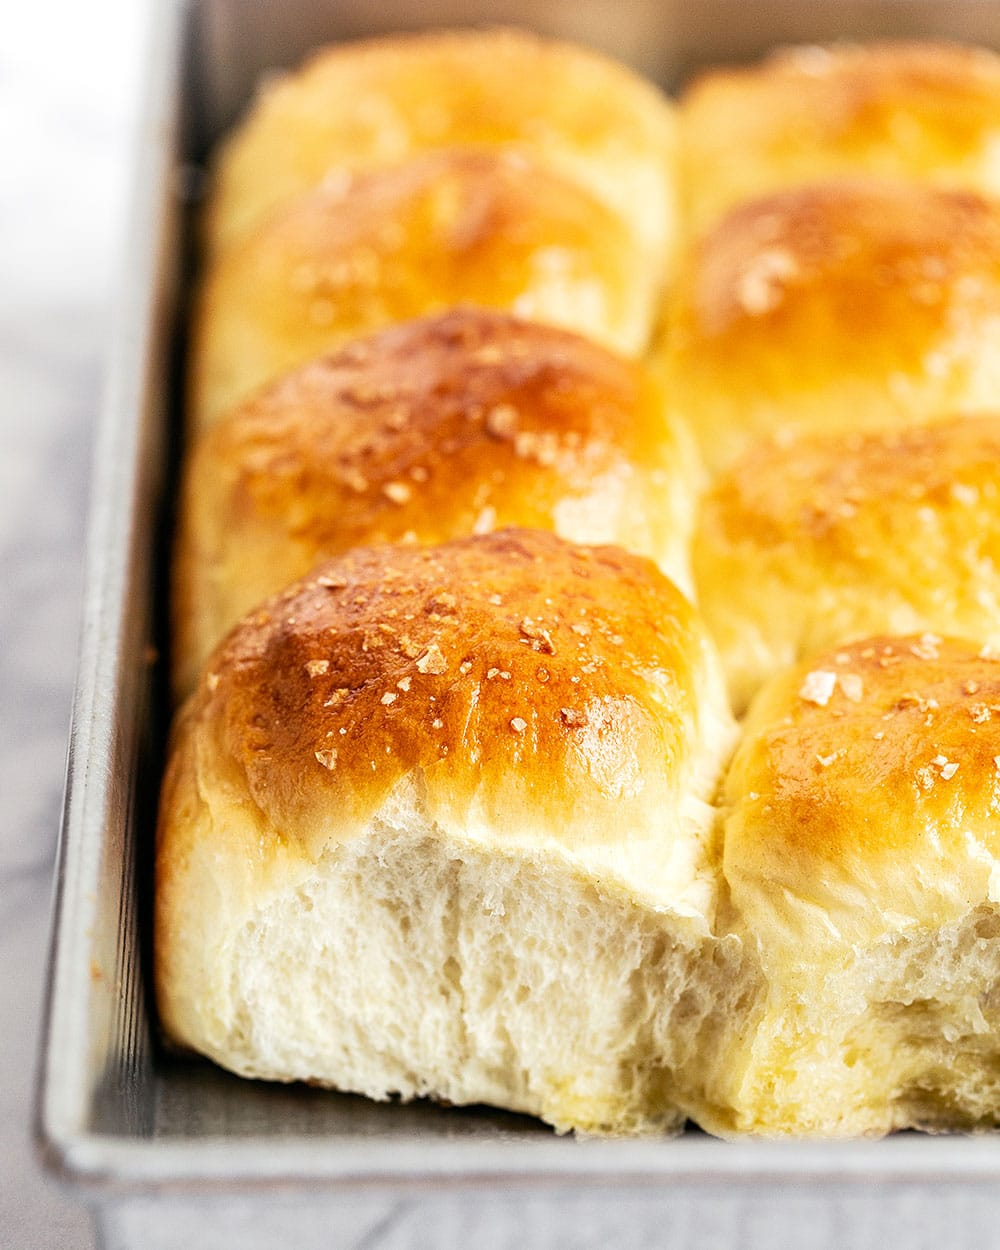 Tray of homemade soft and fluffy bread rolls